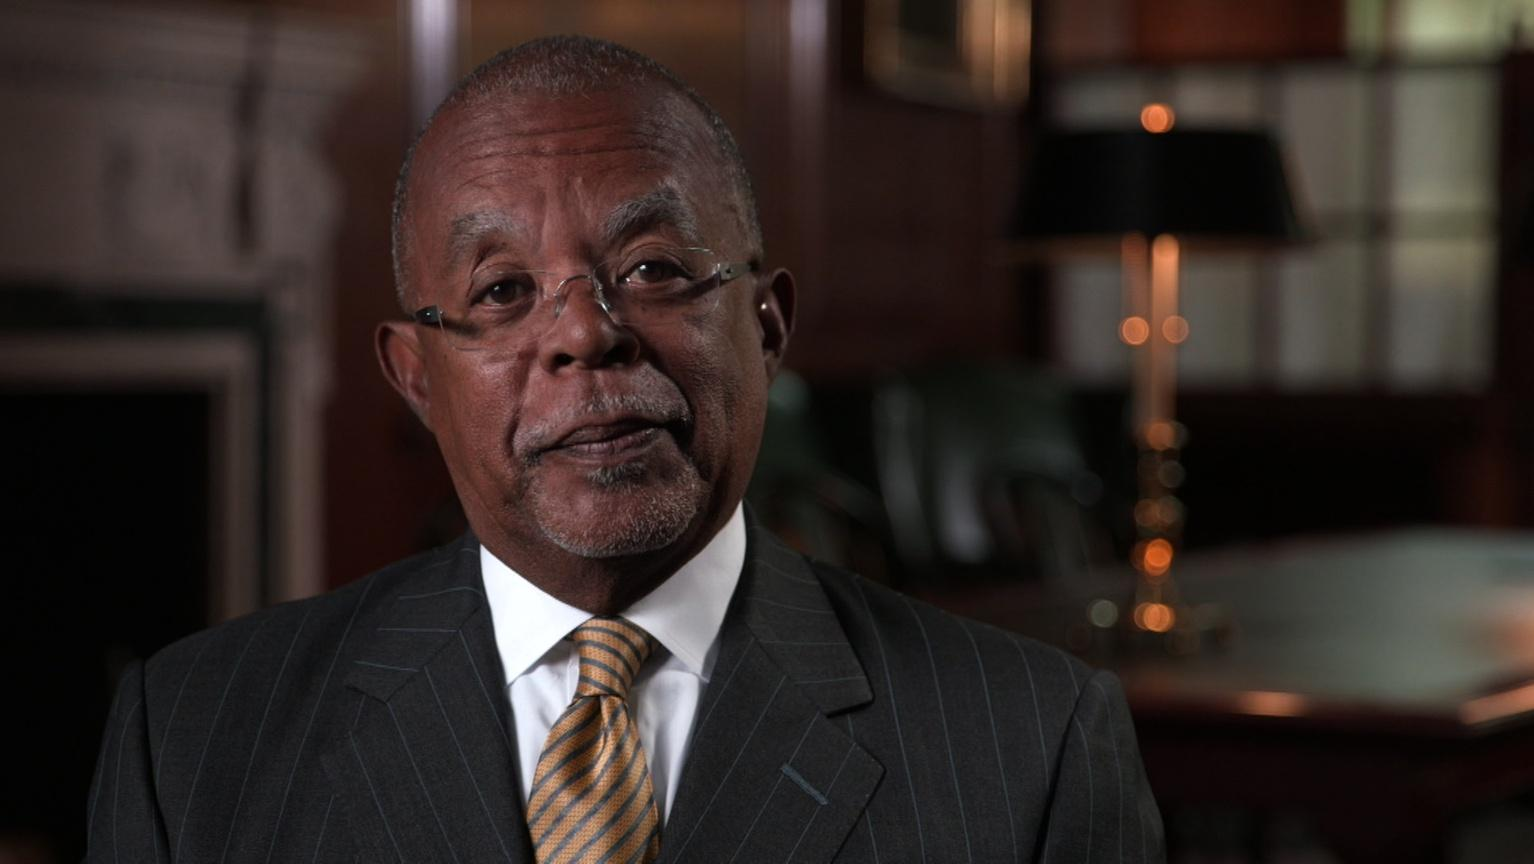 an introduction to the life of henry louis gates jr Henry louis gates jr is john spencer bassett professor of english at duke university a version of this article appears in print on december 9, 1990, on page 6006034 of the national edition with.